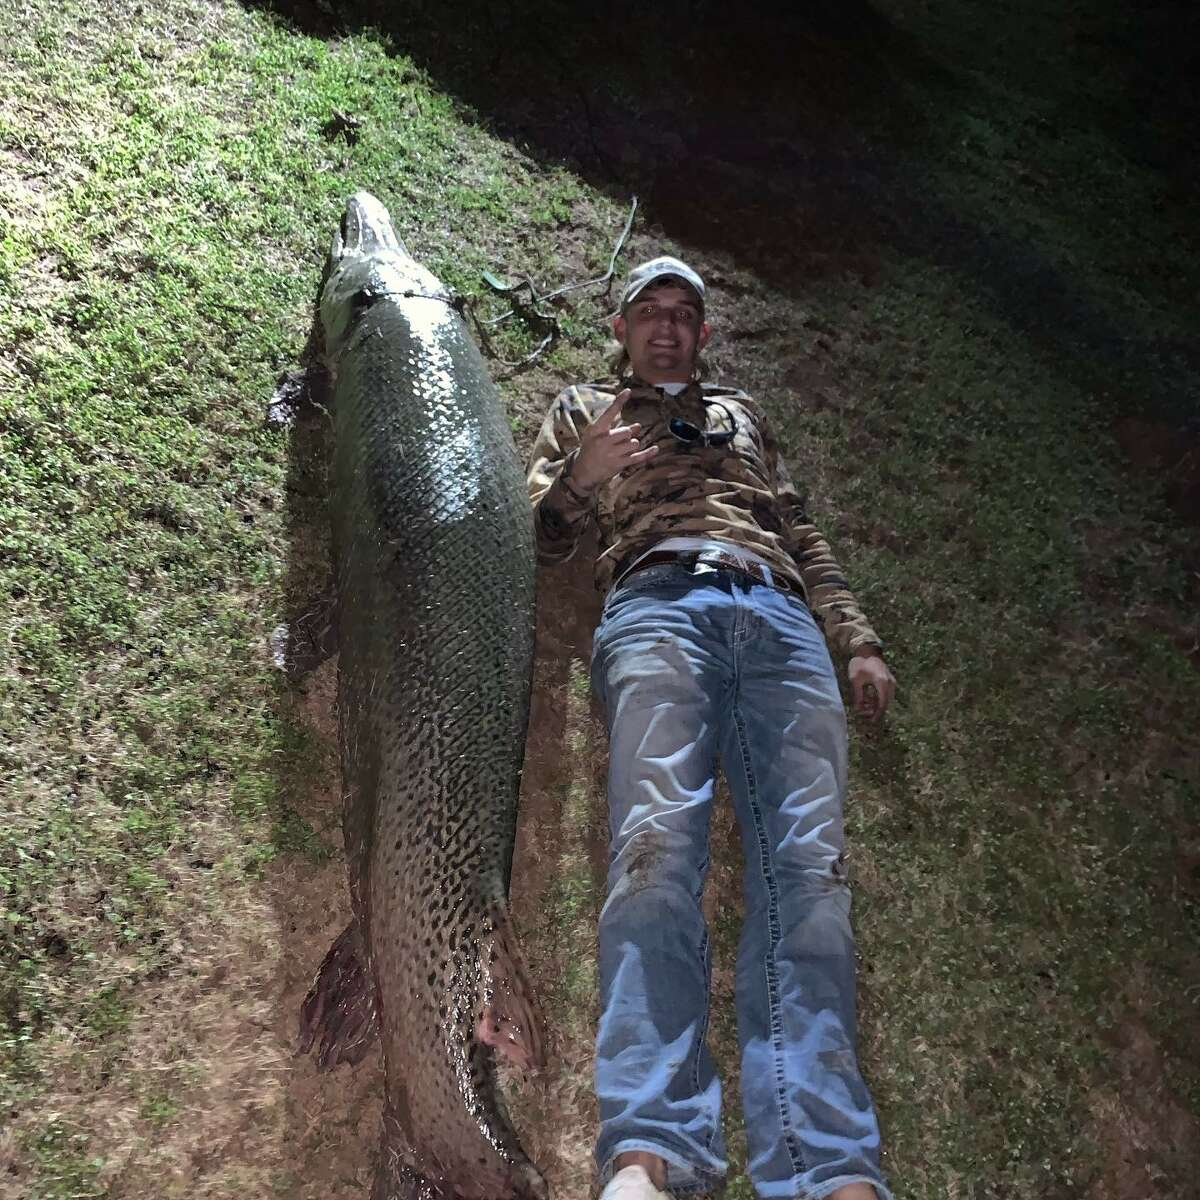 A teen from Needville recently caught a